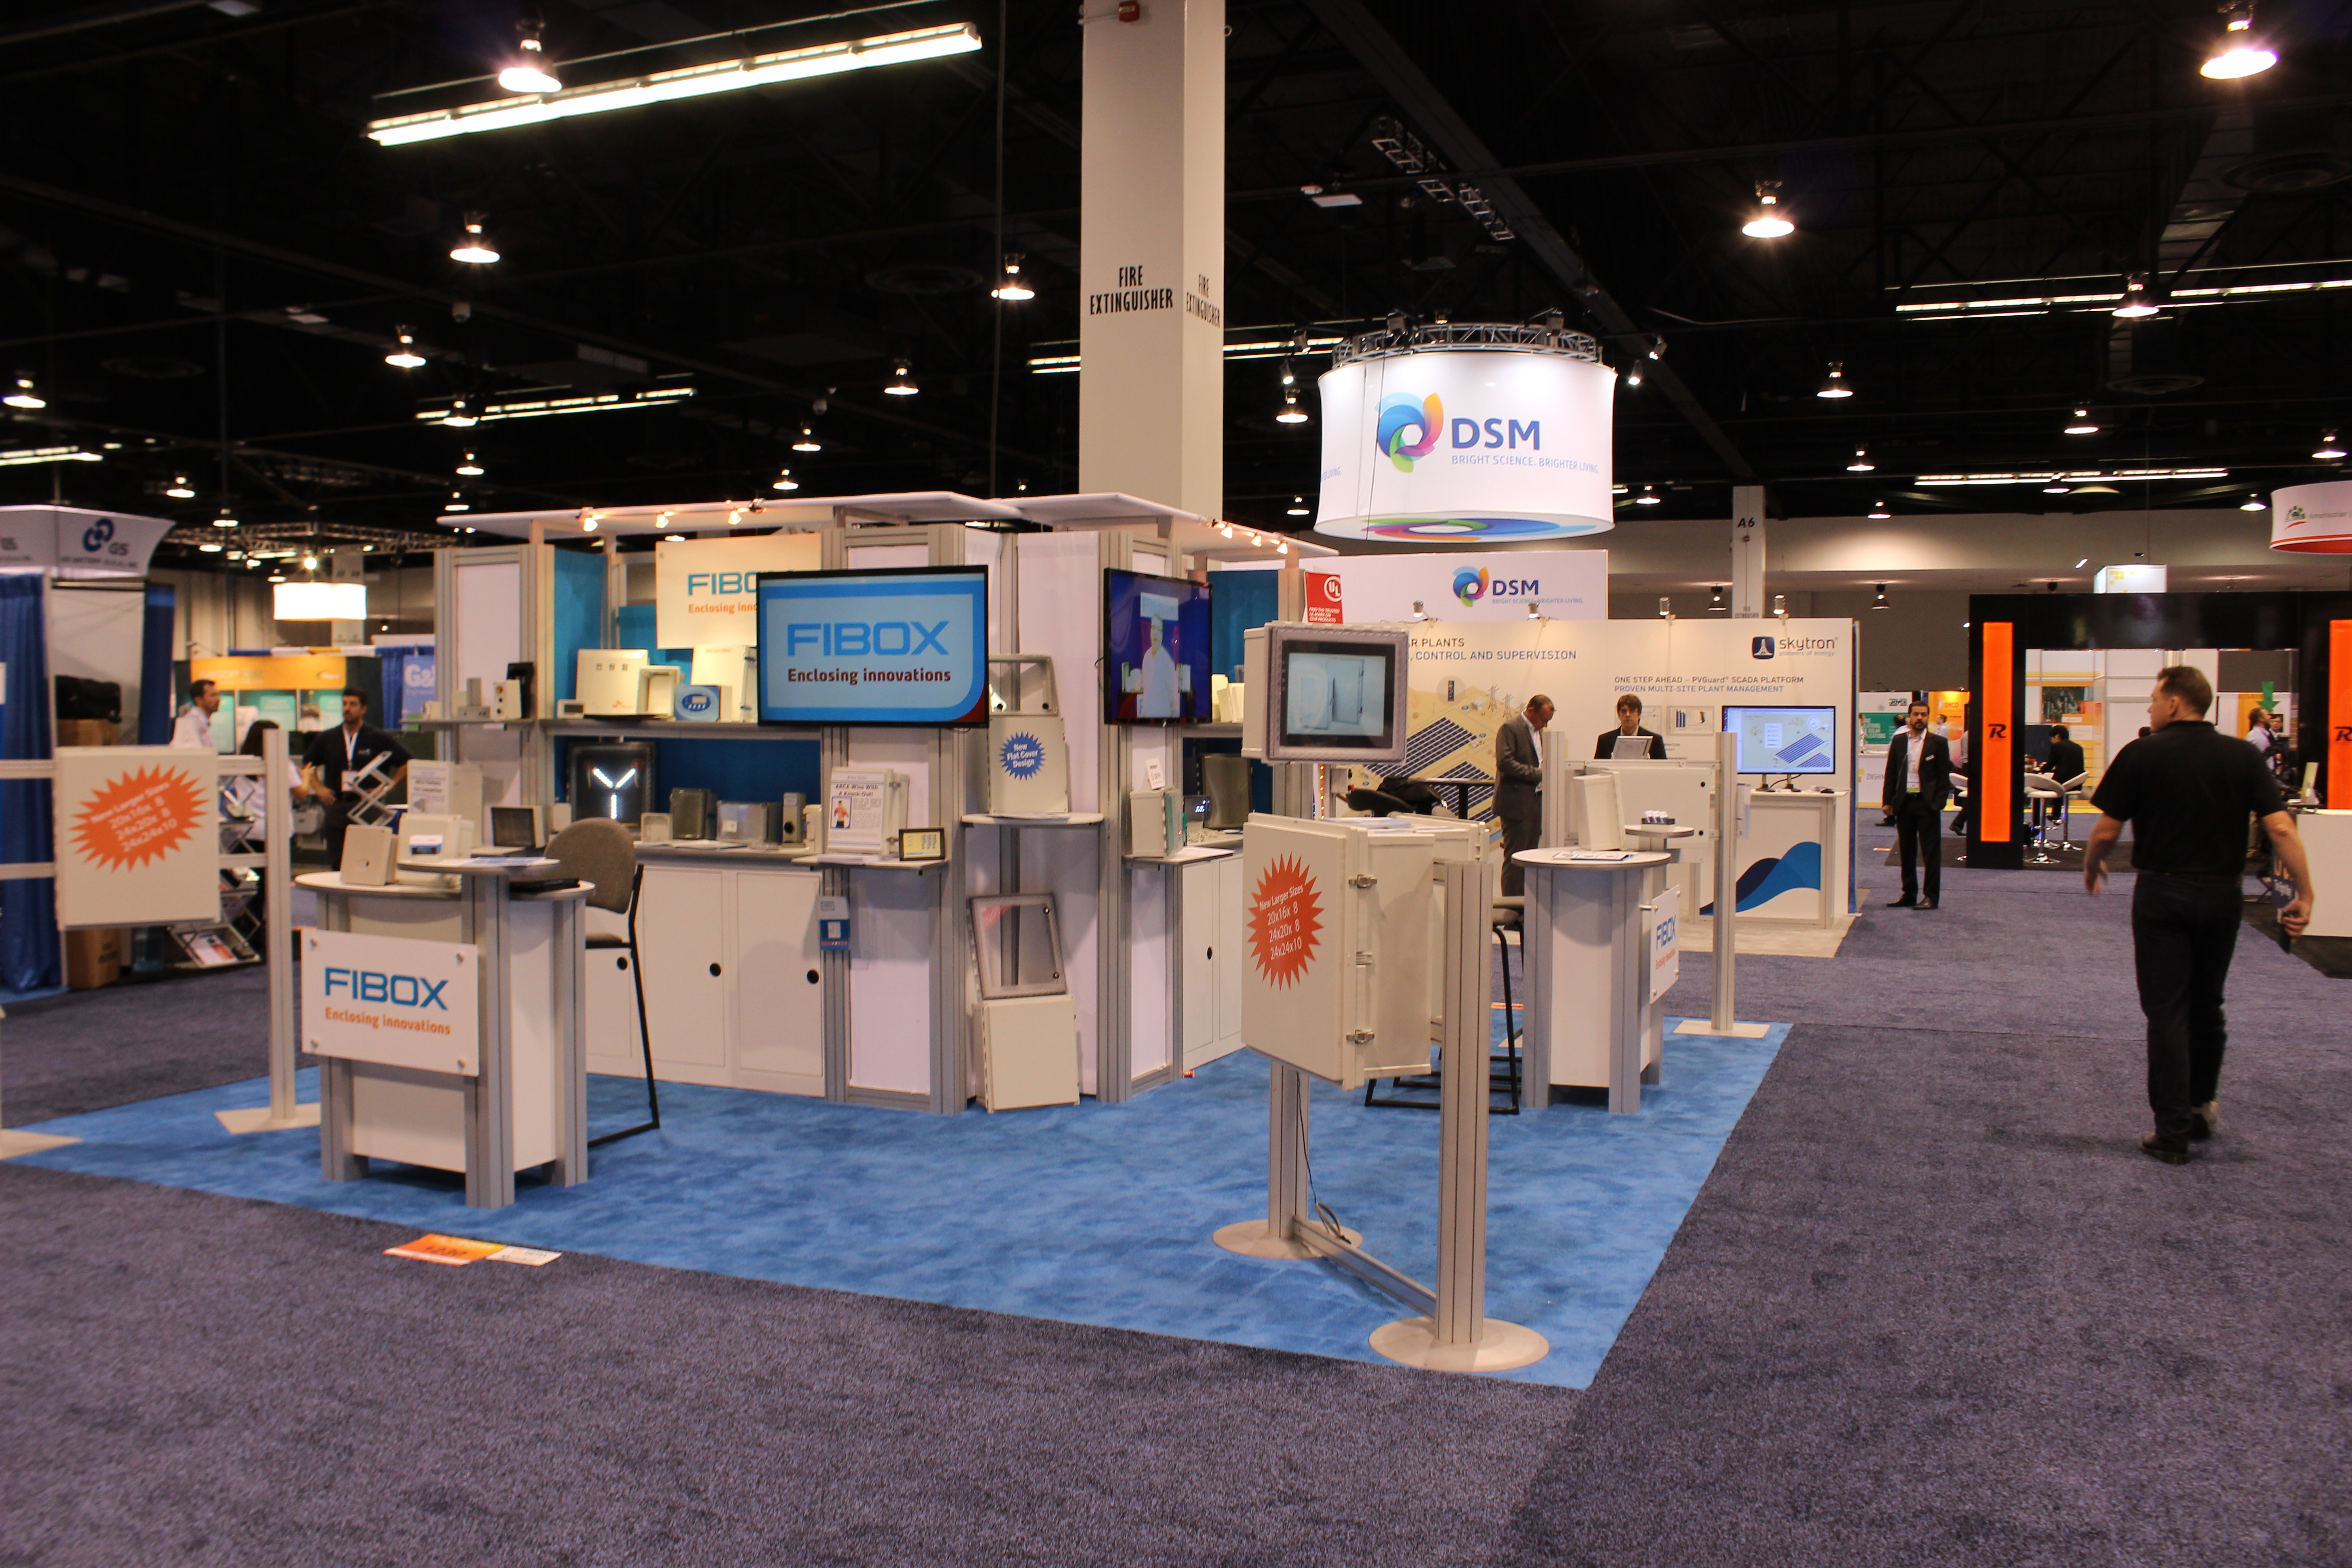 Fibox's booth at SPI 2015